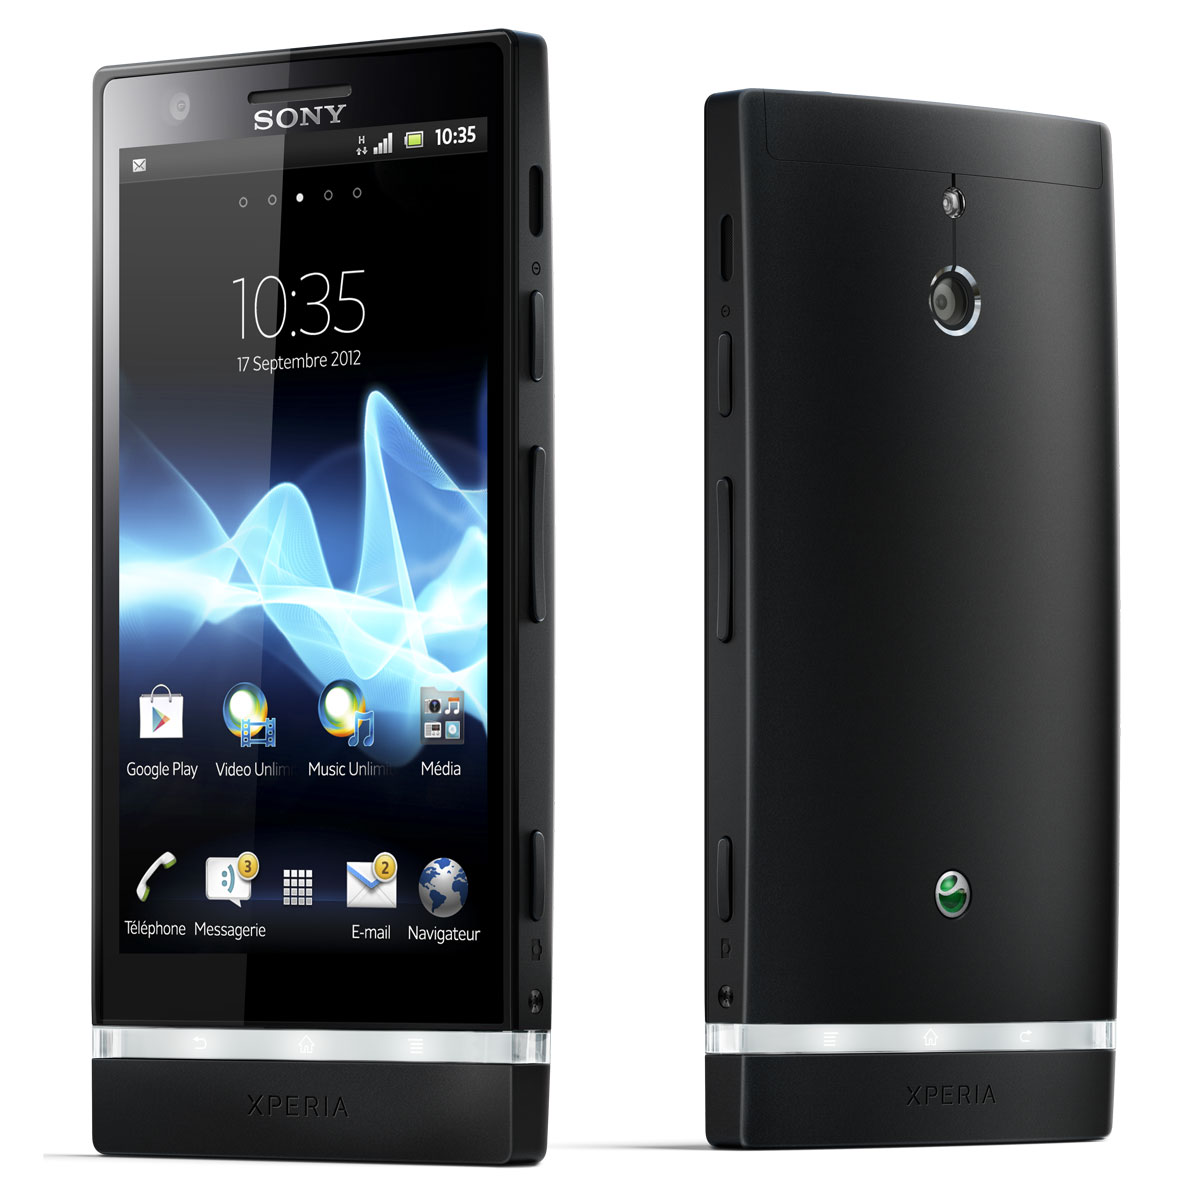 sony xperia p noir mobile smartphone sony sur. Black Bedroom Furniture Sets. Home Design Ideas